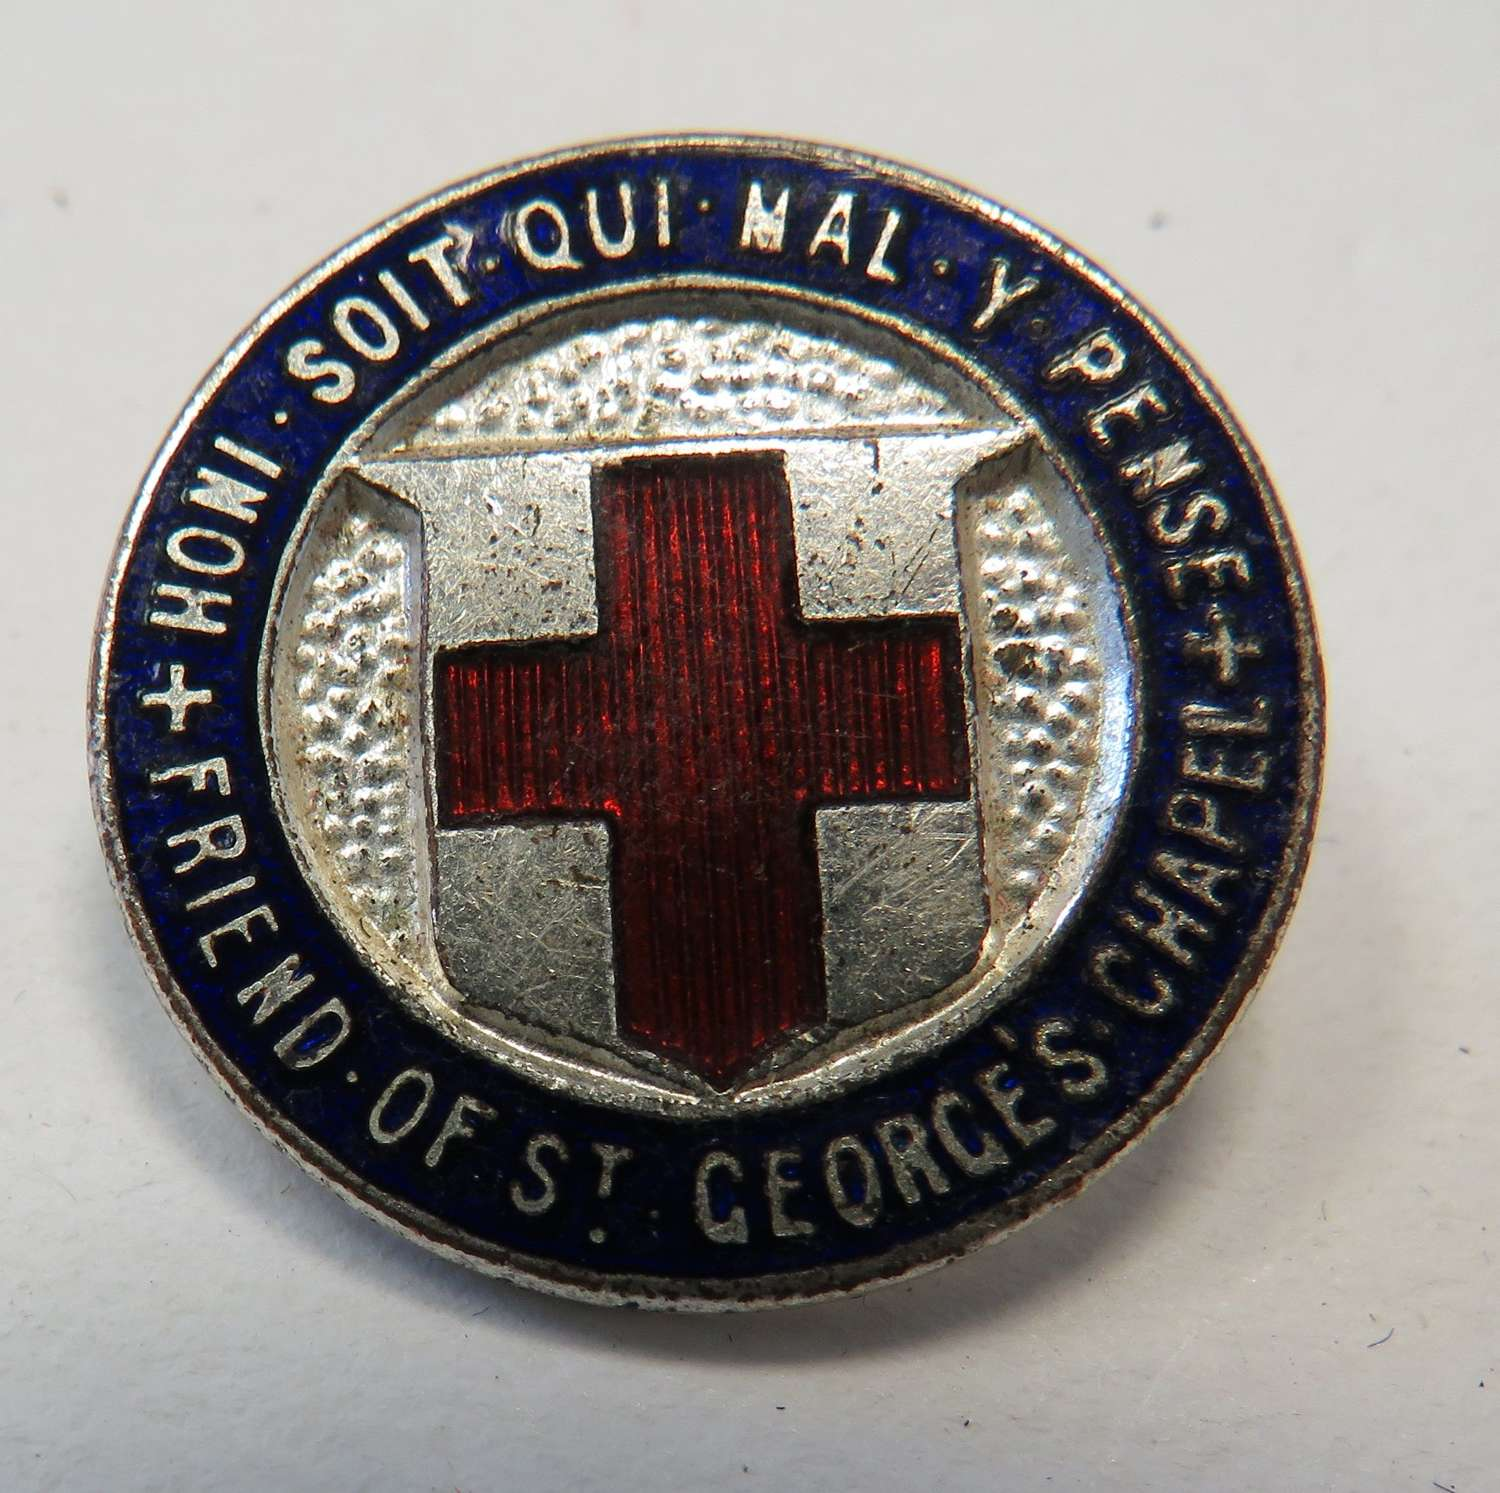 Friends of St Georges Chapel Lapel Badge